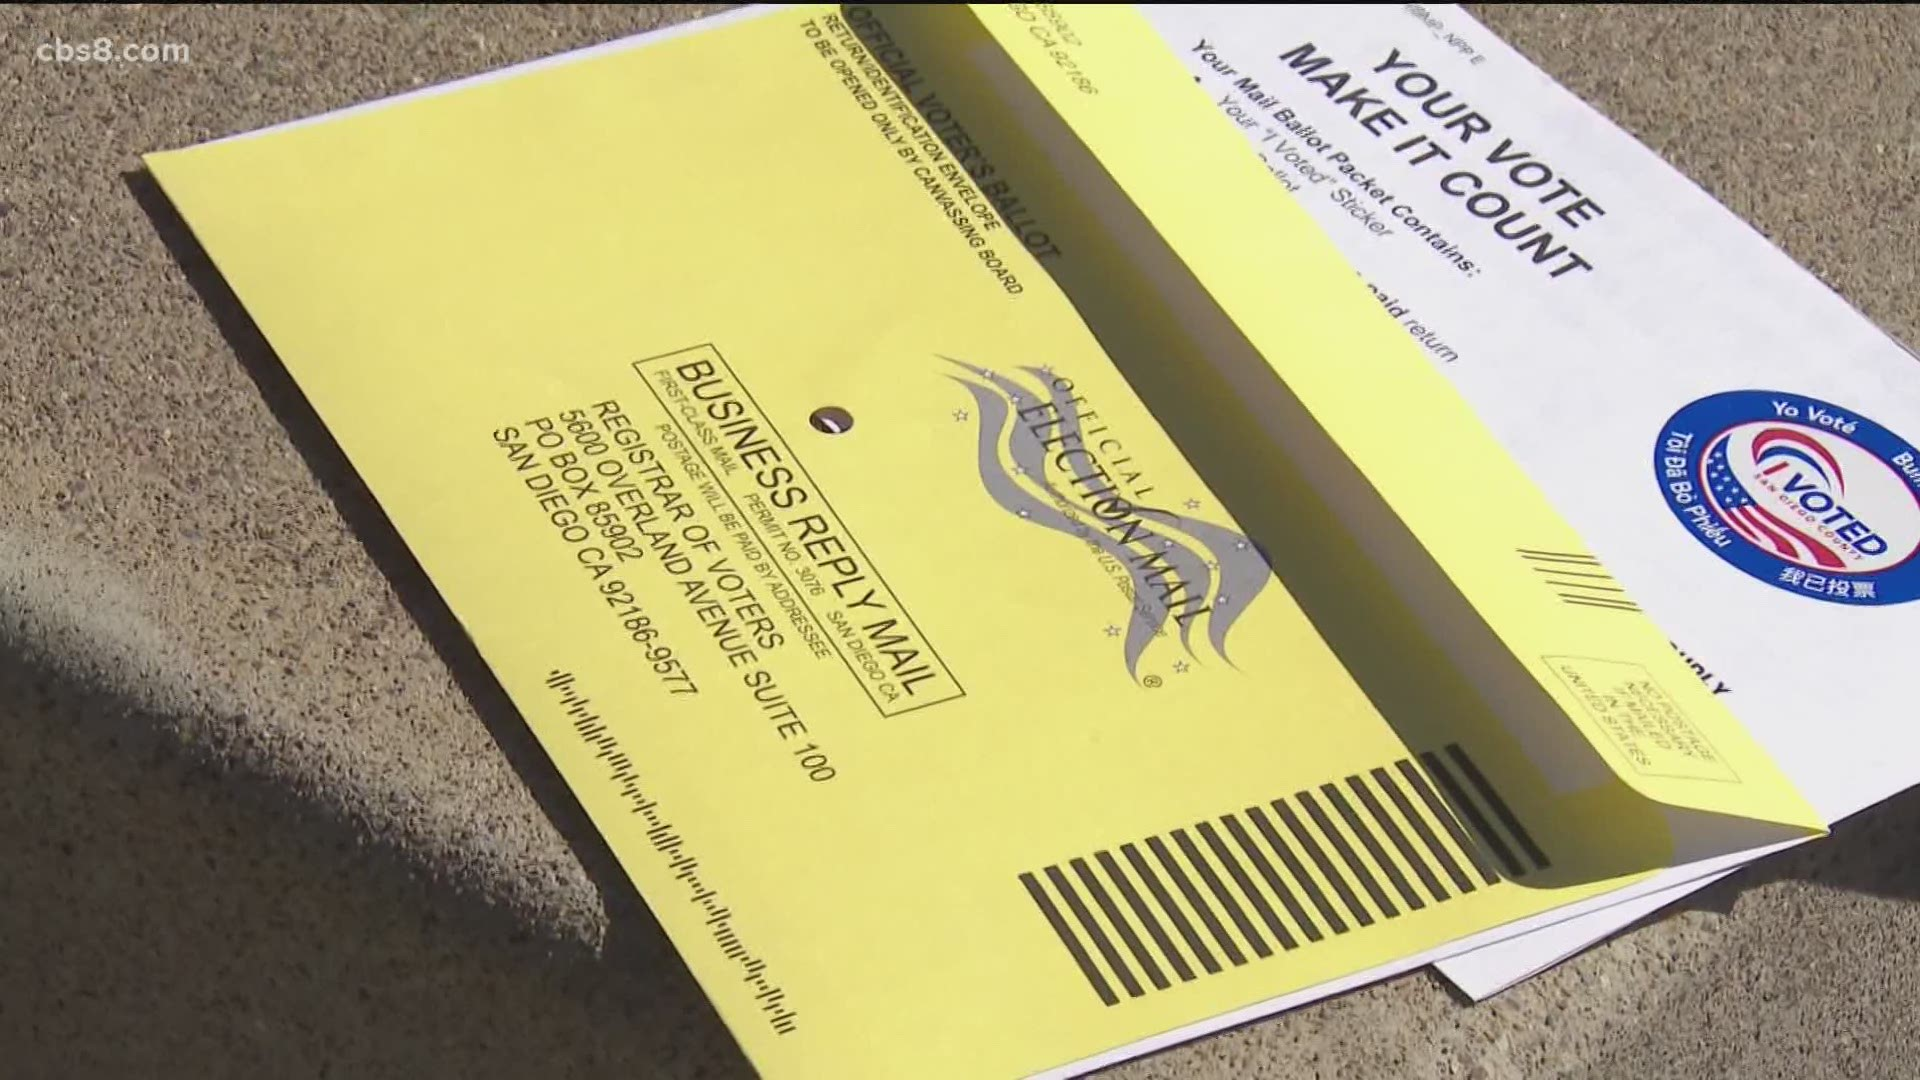 Count Me In Mail Ballot Drop Off Locations Doubled In San Diego County Cbs8 Com